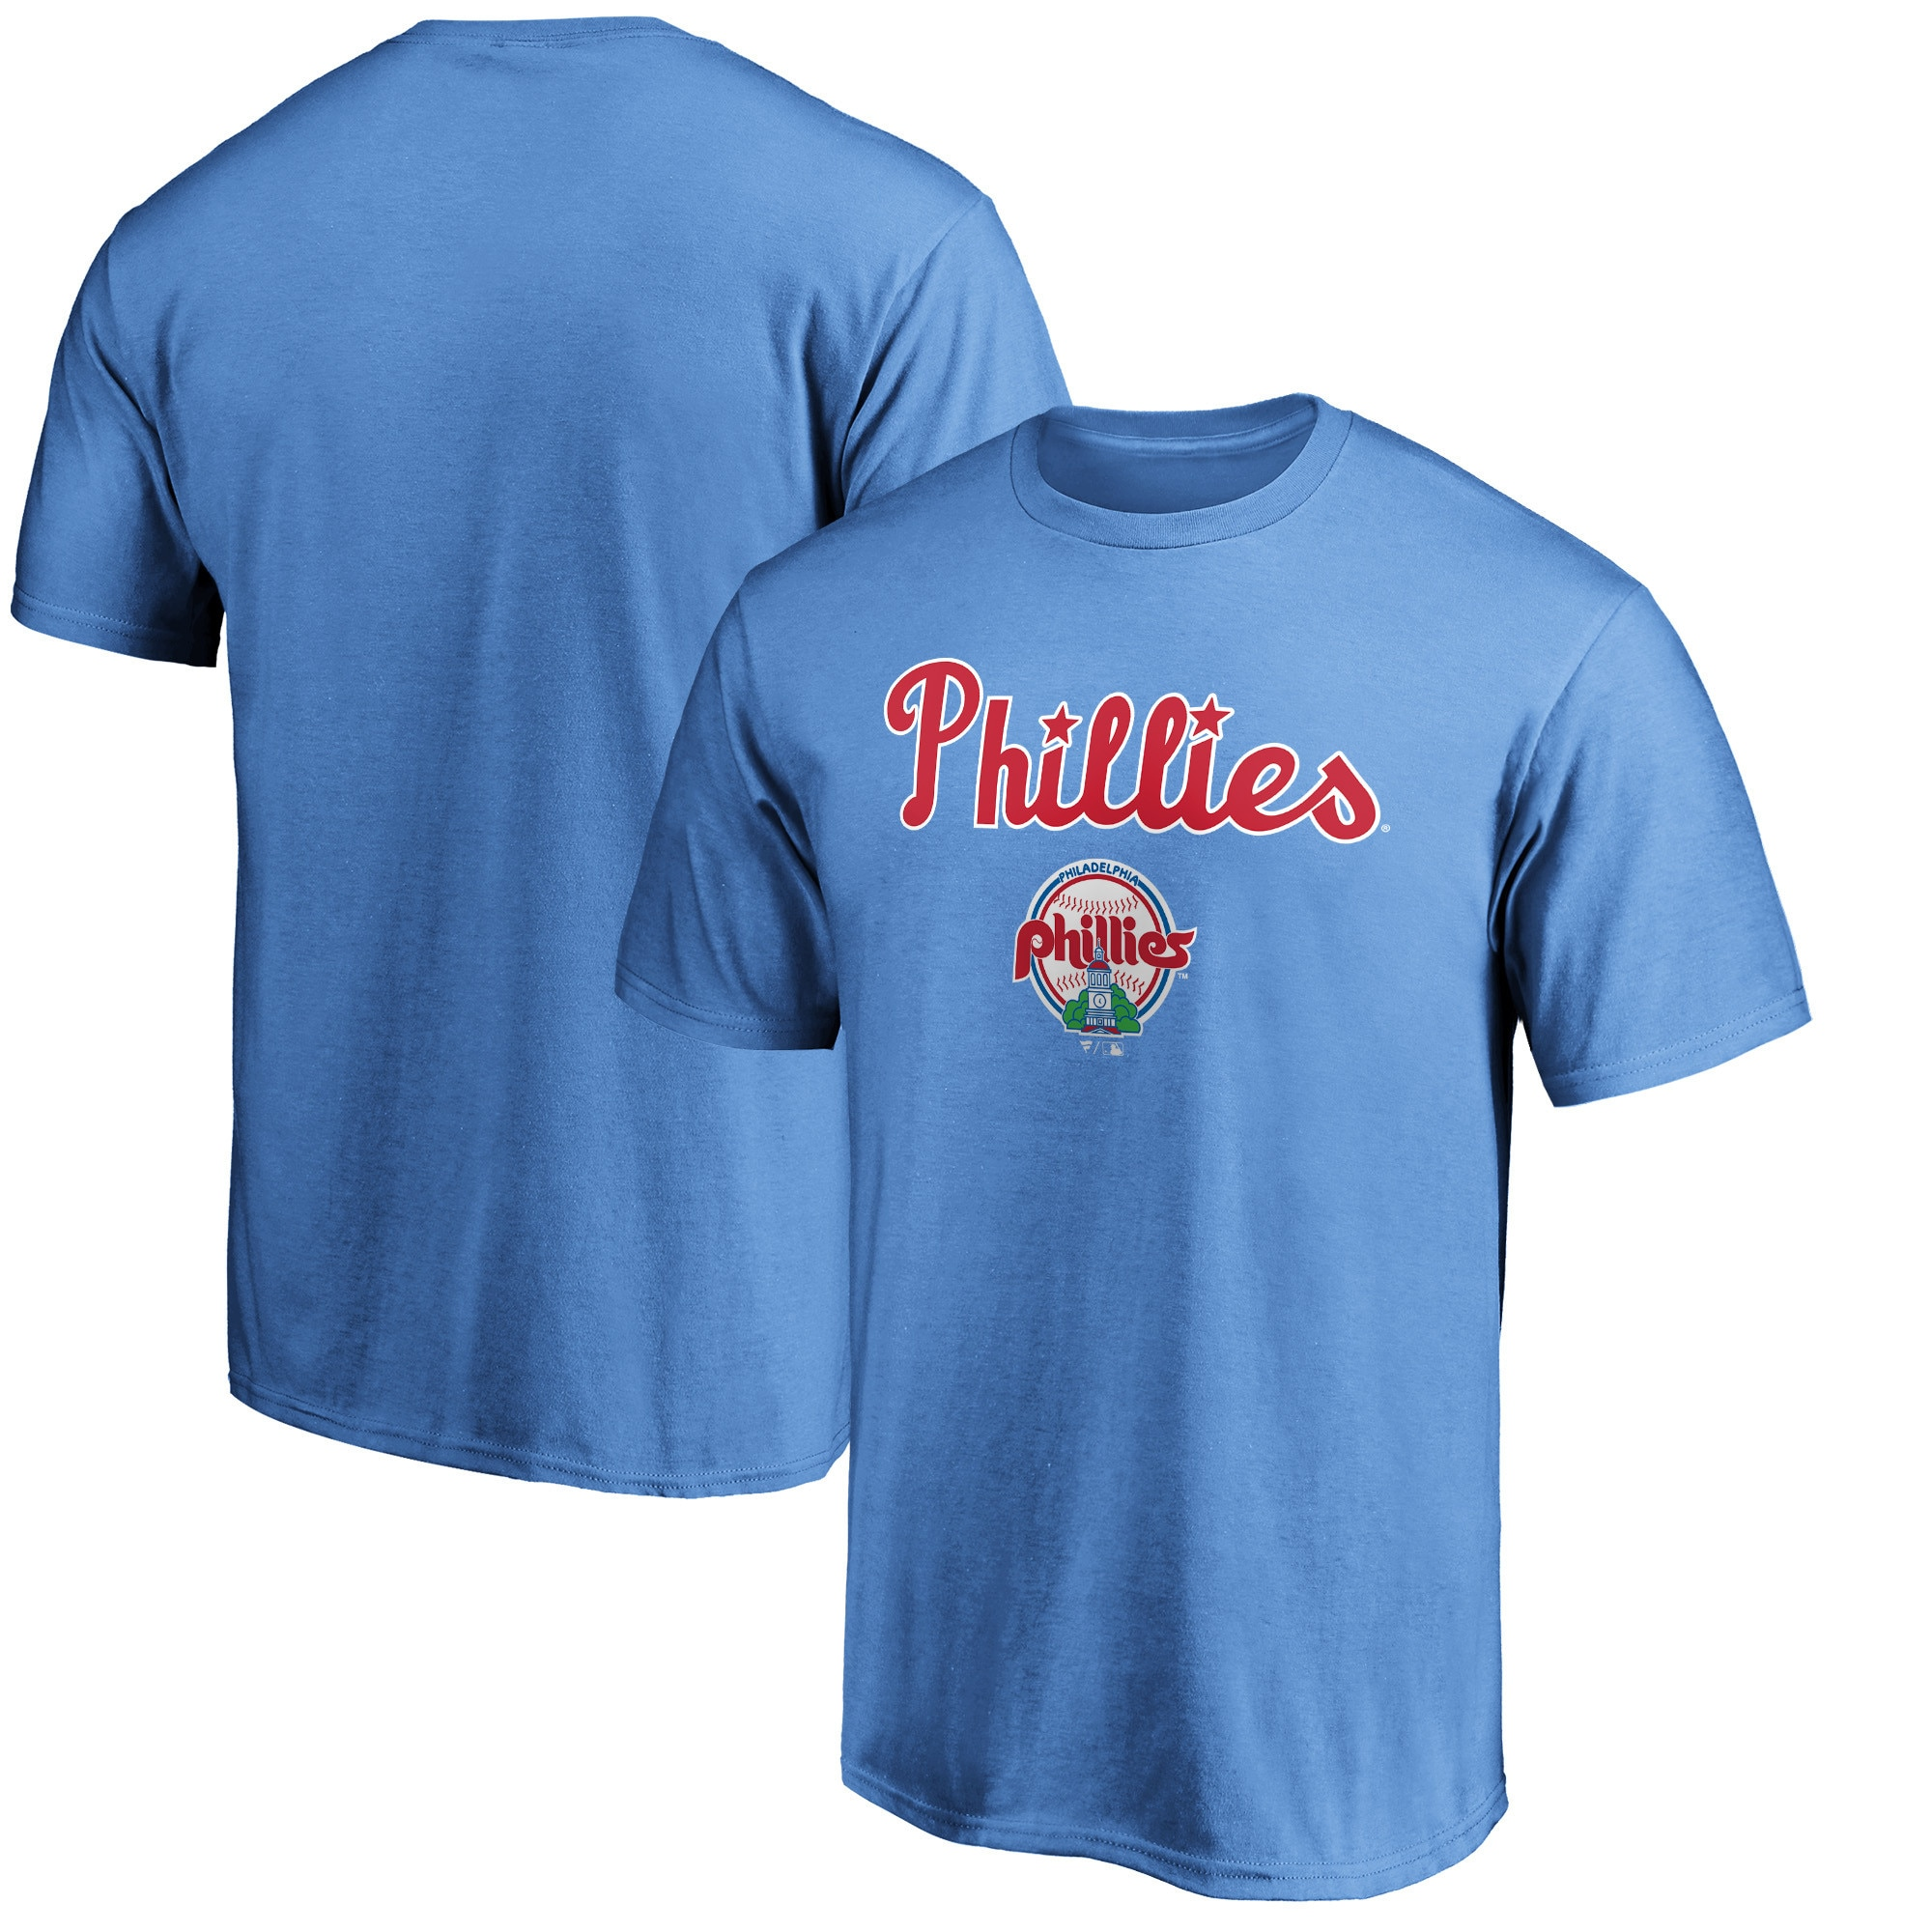 Philadelphia Phillies Fanatics Branded Cooperstown Collection Team Wahconah T-Shirt - Light Blue